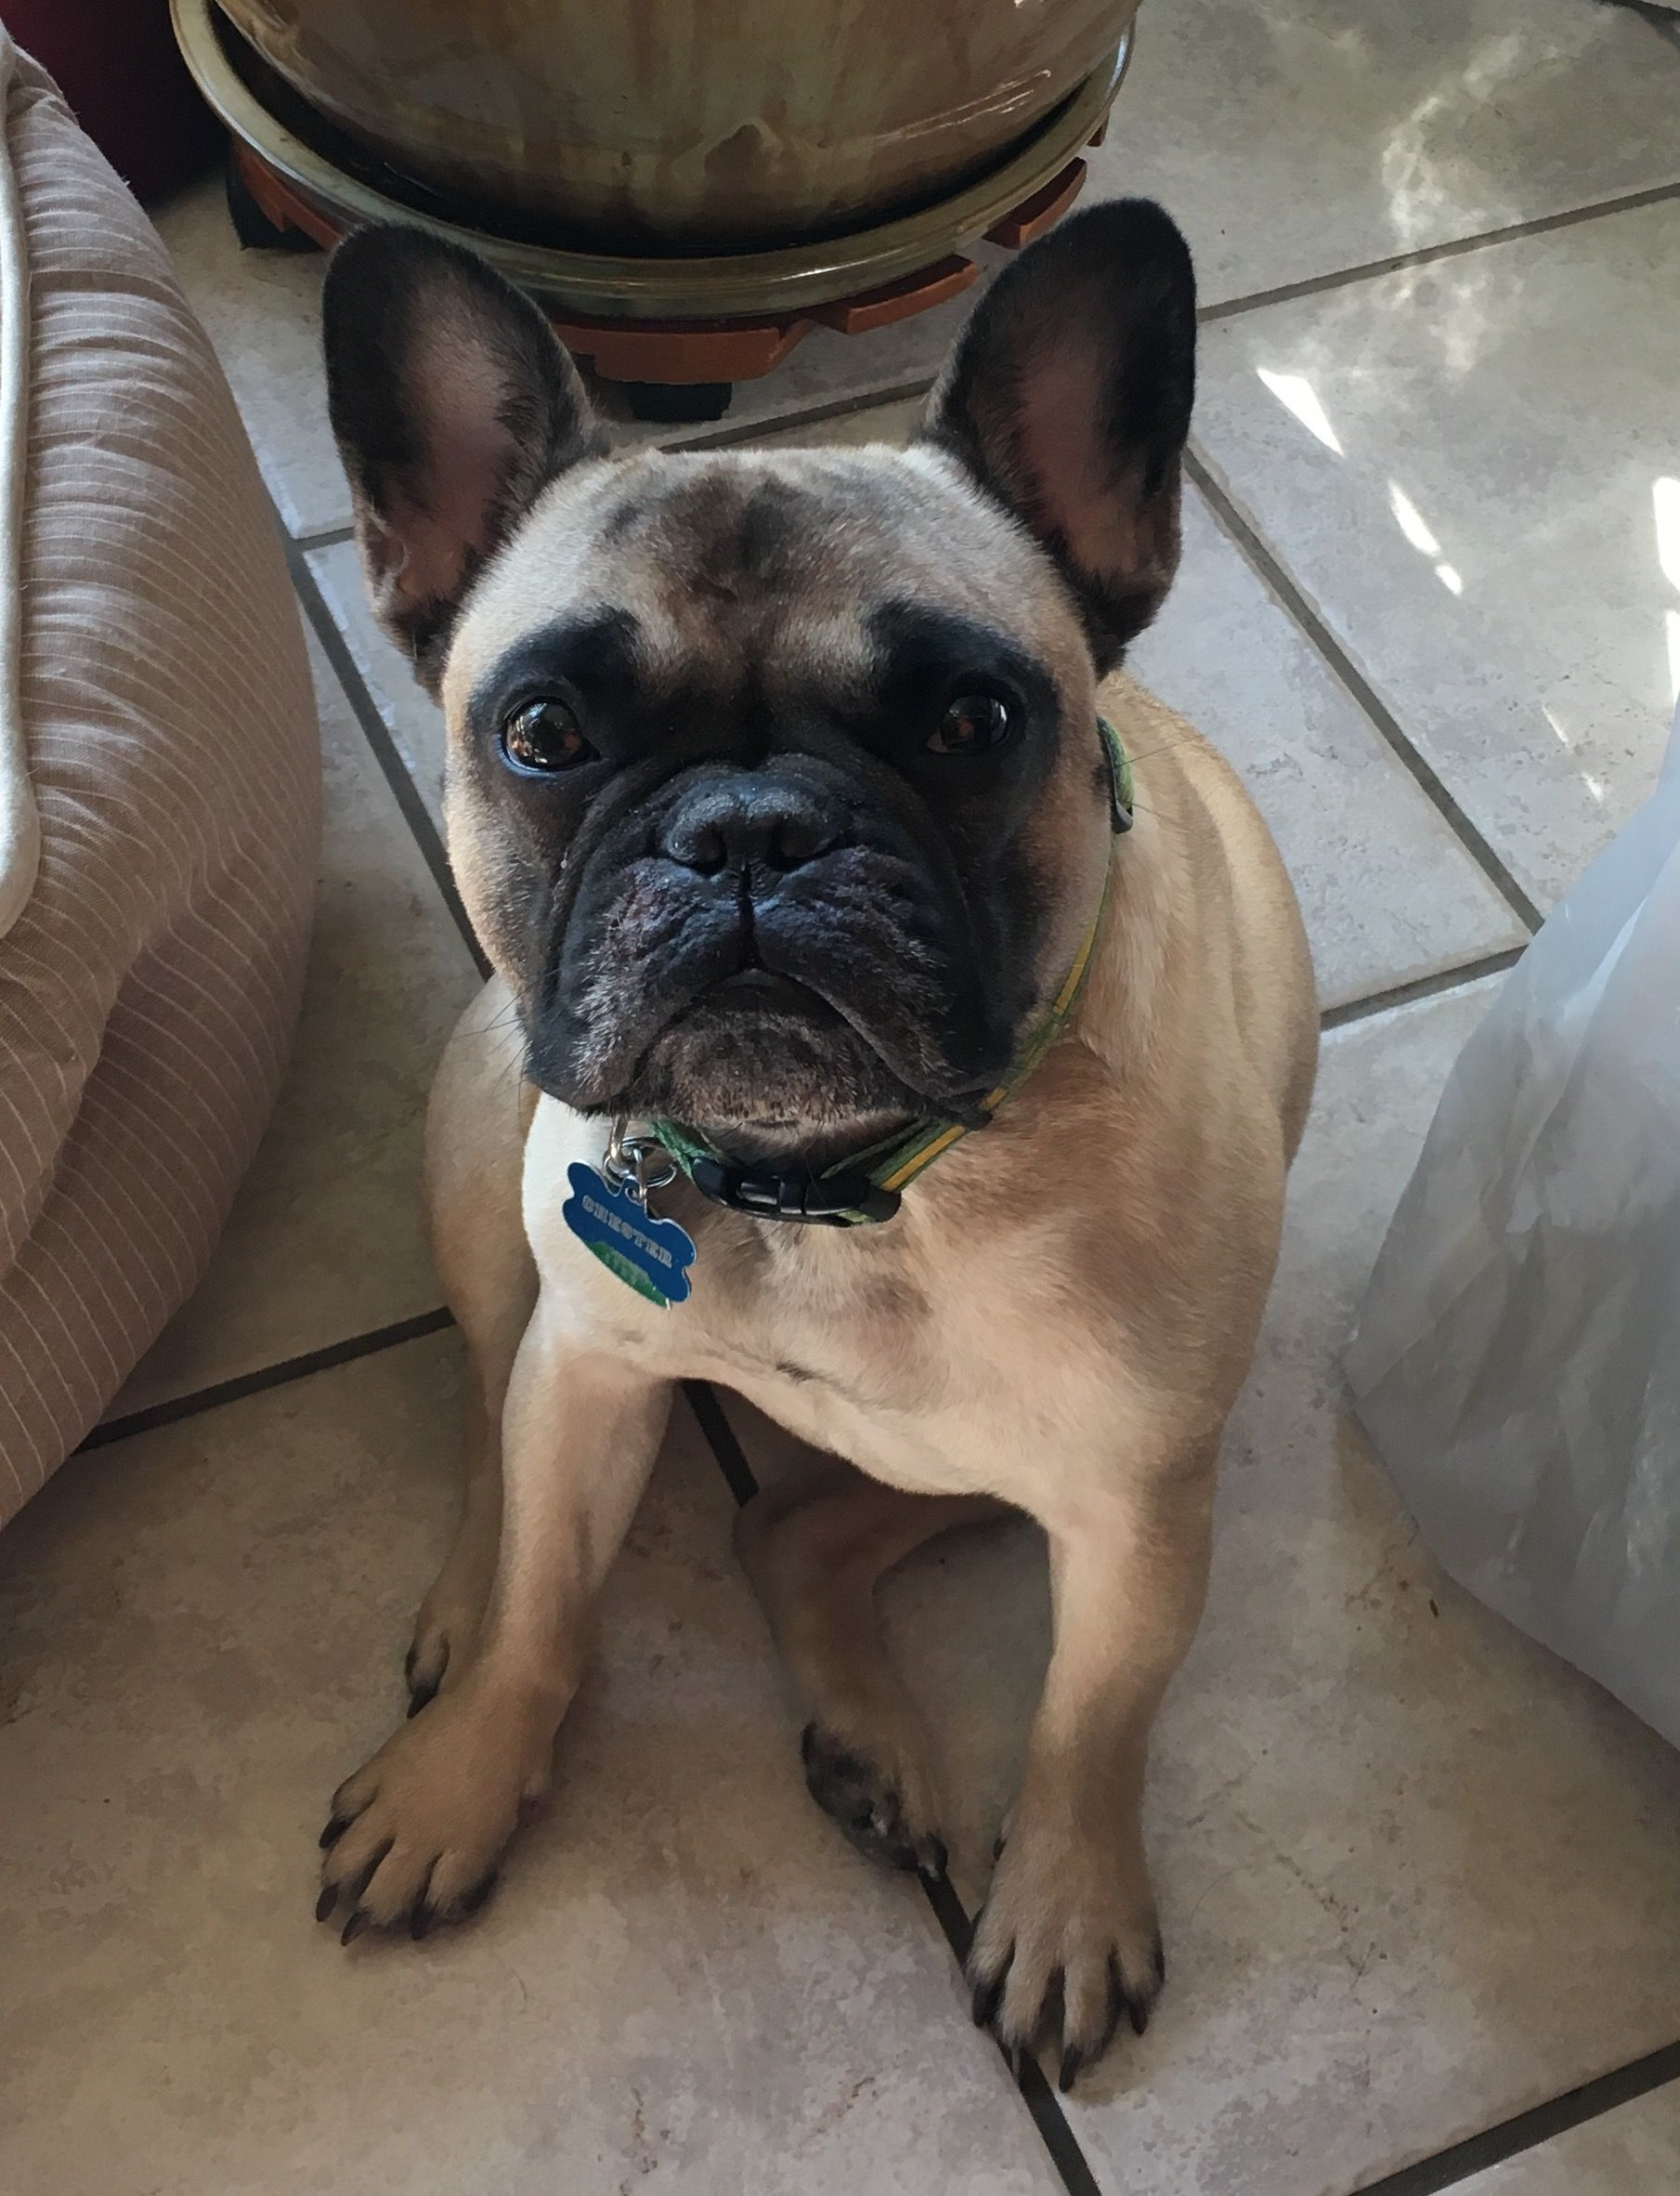 French Bulldog Dog For Adoption In Katy Tx Adn 501491 On Puppyfinder Com Gender Male Age Adult Dog Adoption French Bulldog Rescue French Bulldog Dog